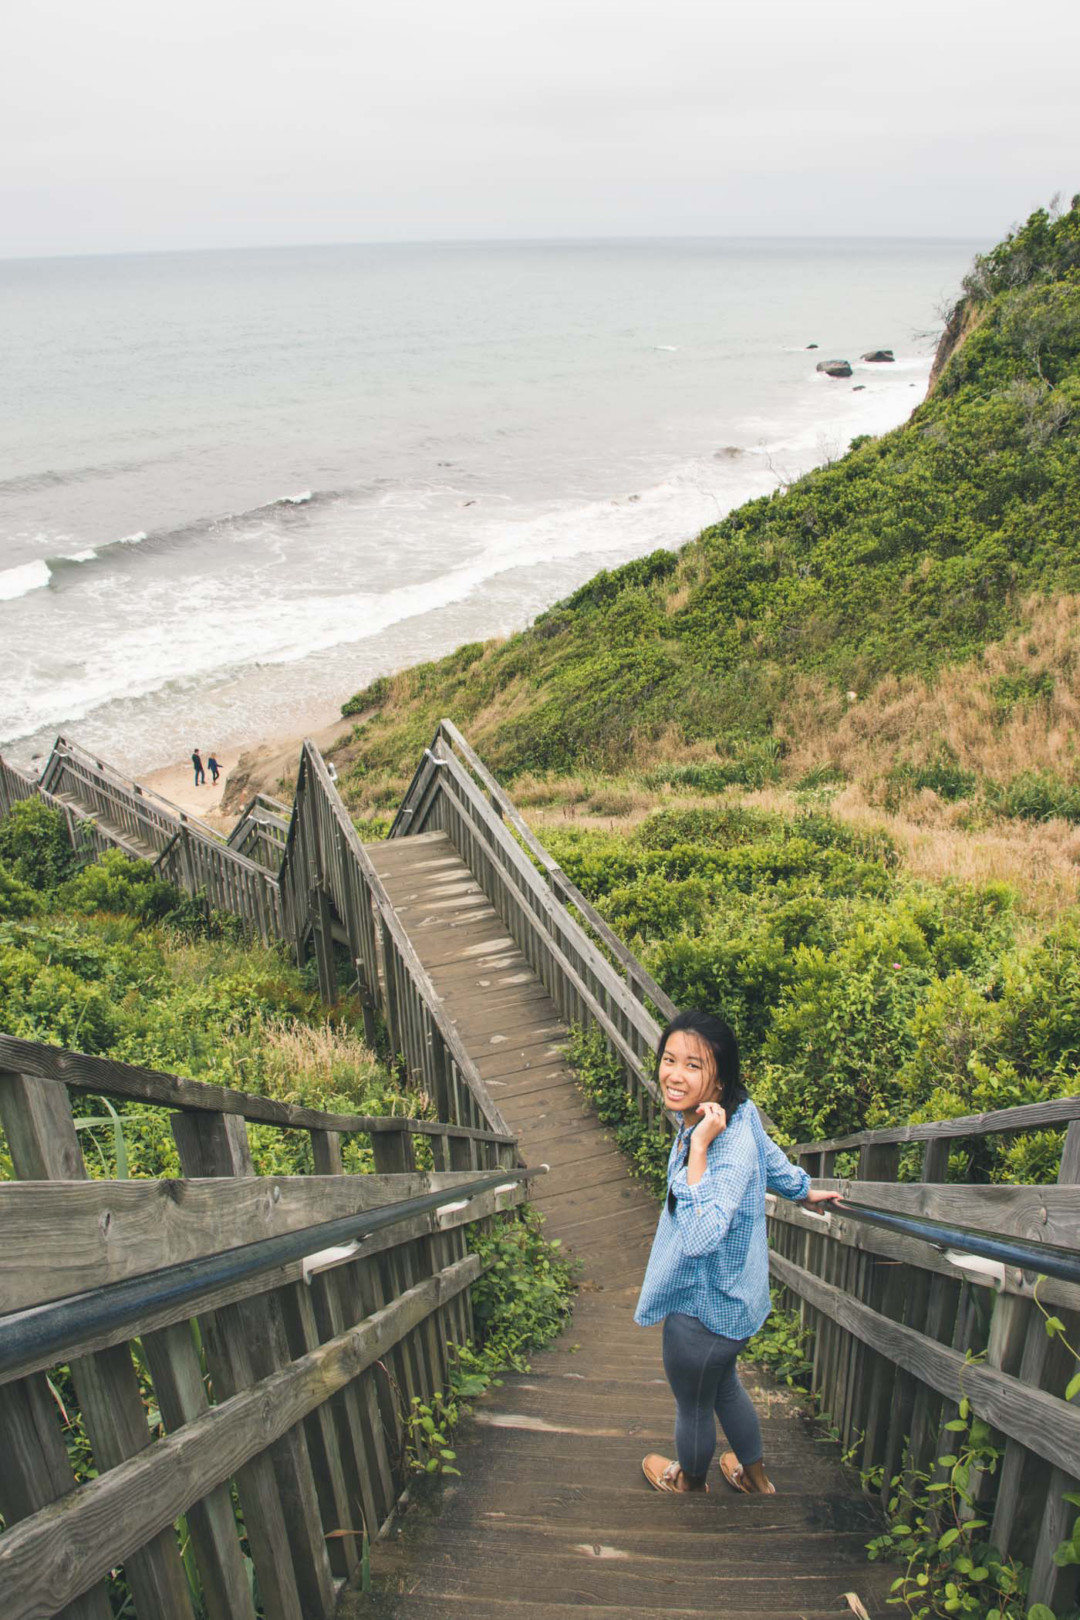 Kim at the stairs of Mohegan Bluff, Block Island